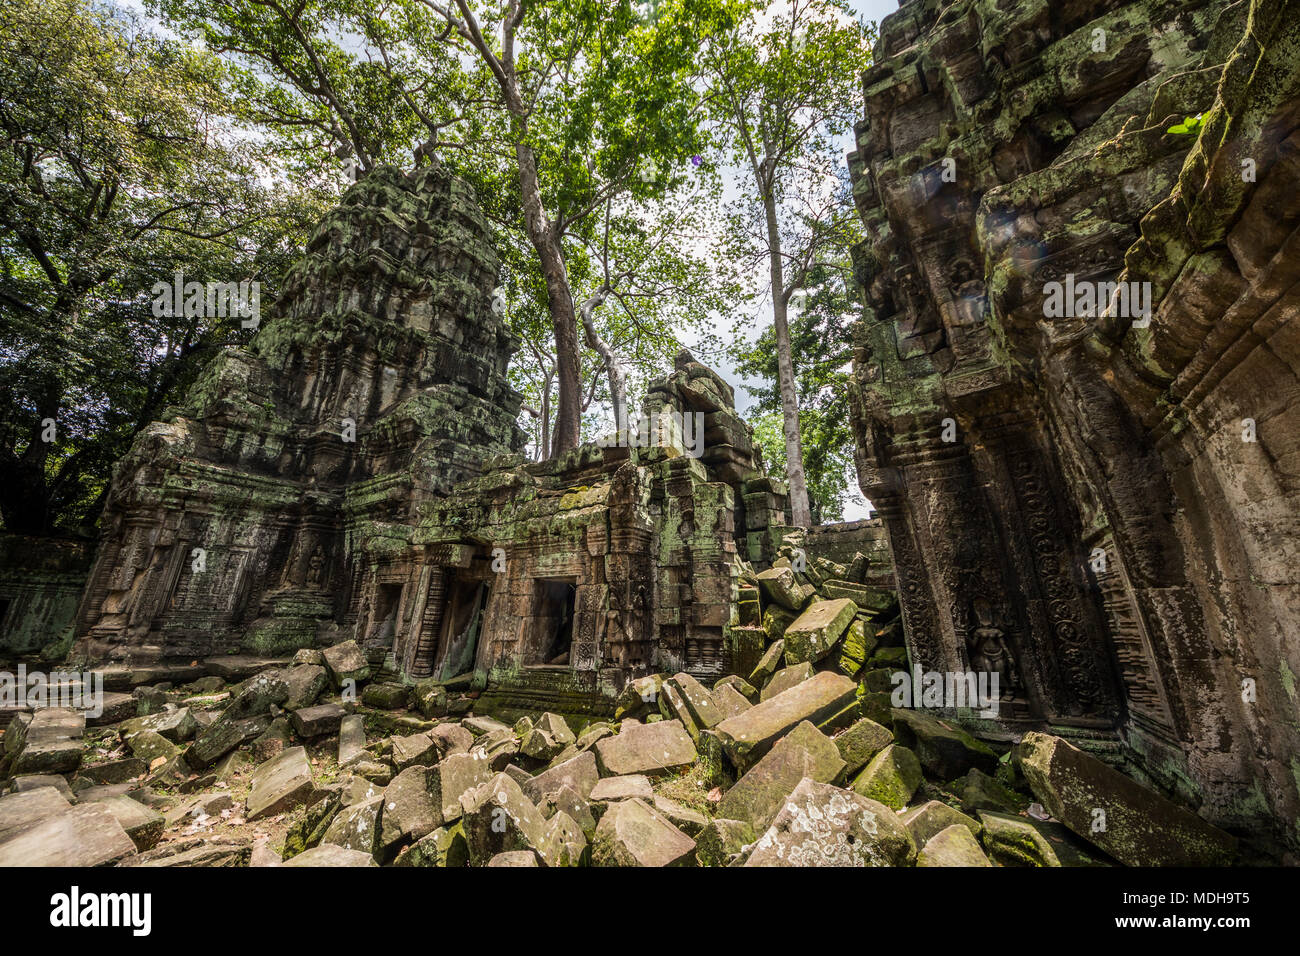 Ta Prohm temple ruins overgrown by vegetation; Angkor, Siem Reap, Cambodia - Stock Image